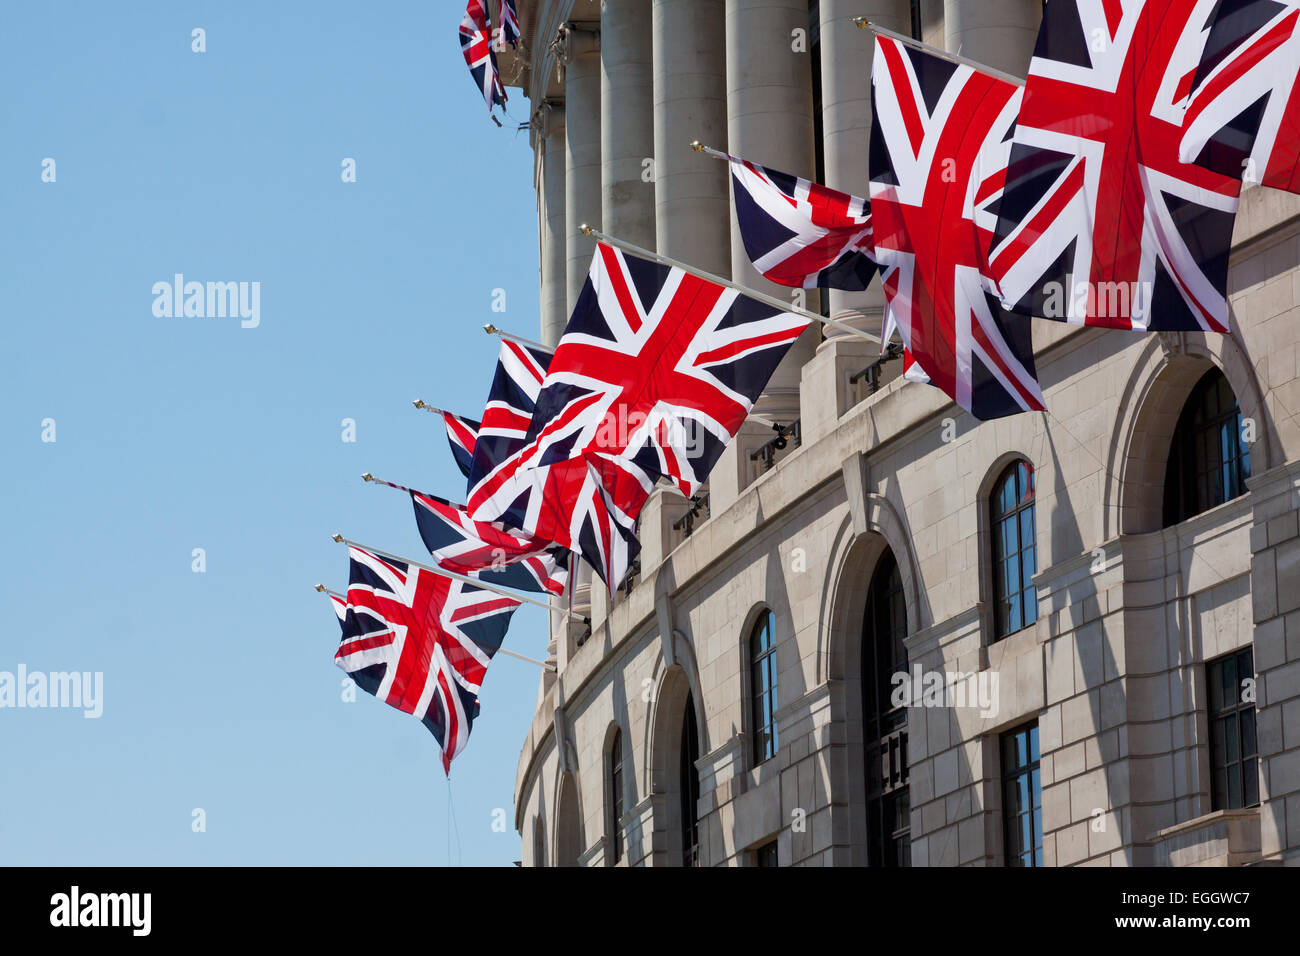 London building decorated with Union Jack flags - Stock Image